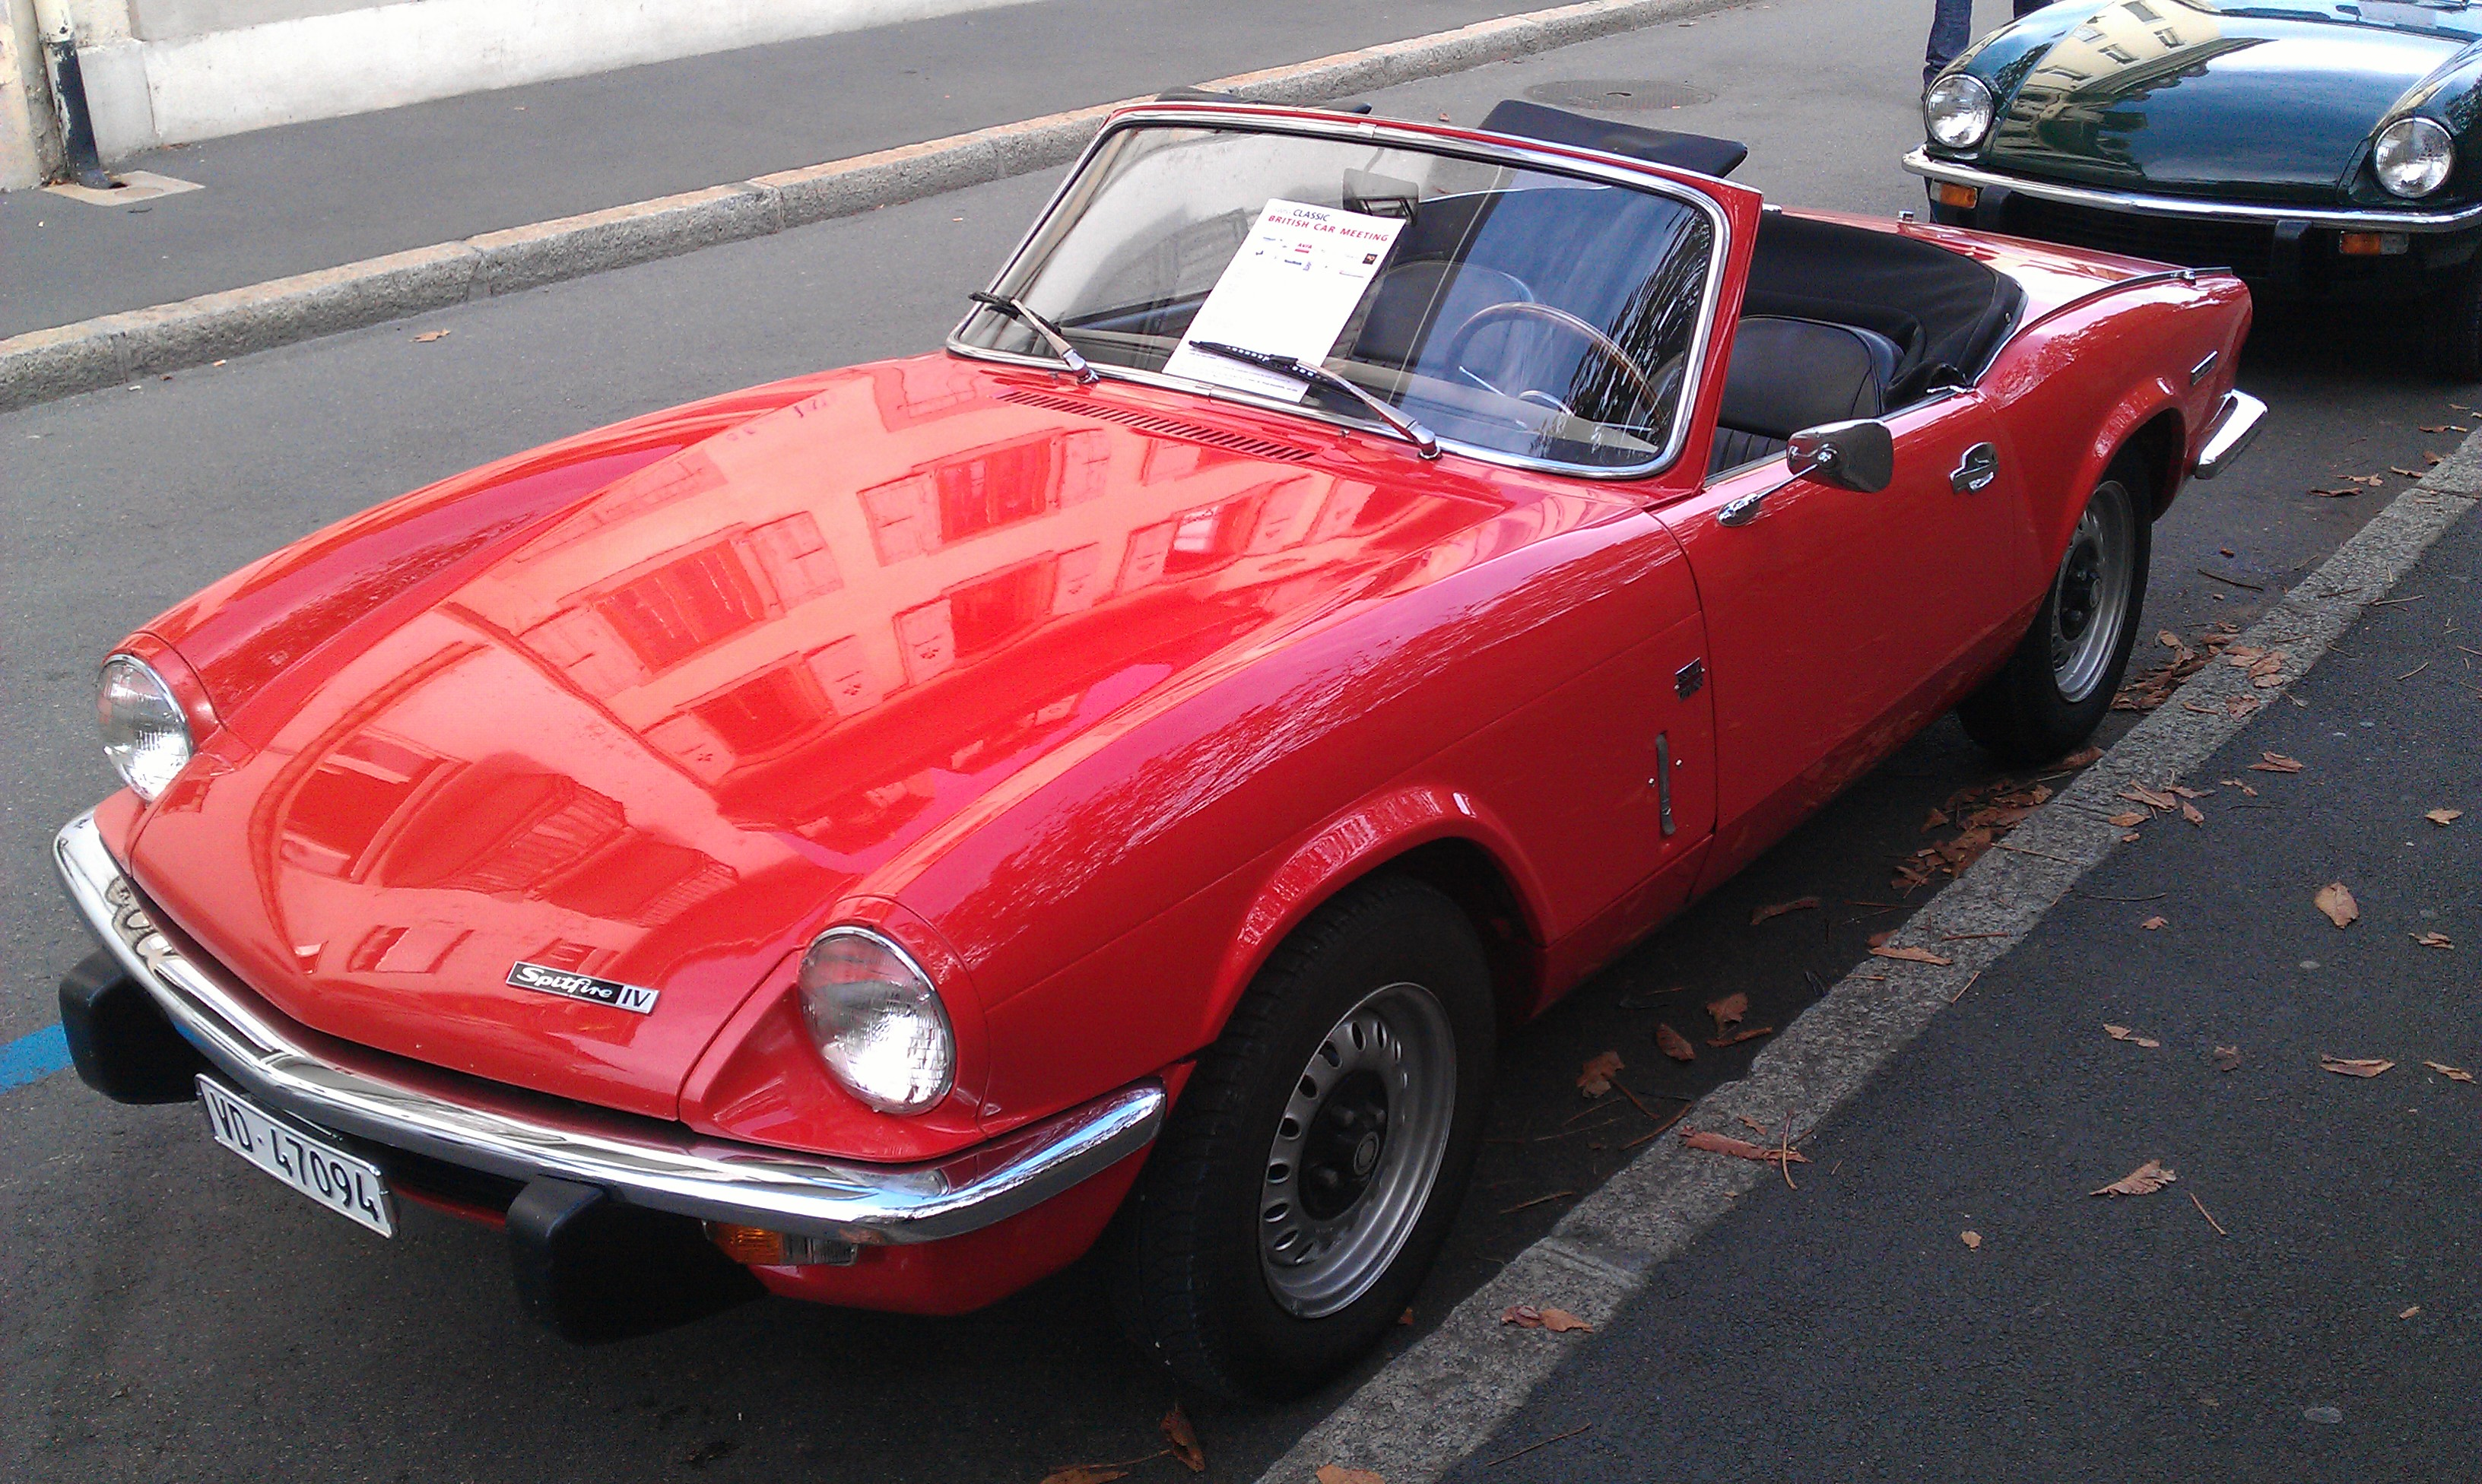 FileTriumph Spitfire MkIV in Morges 2012  5jpg  Wikimedia Commons